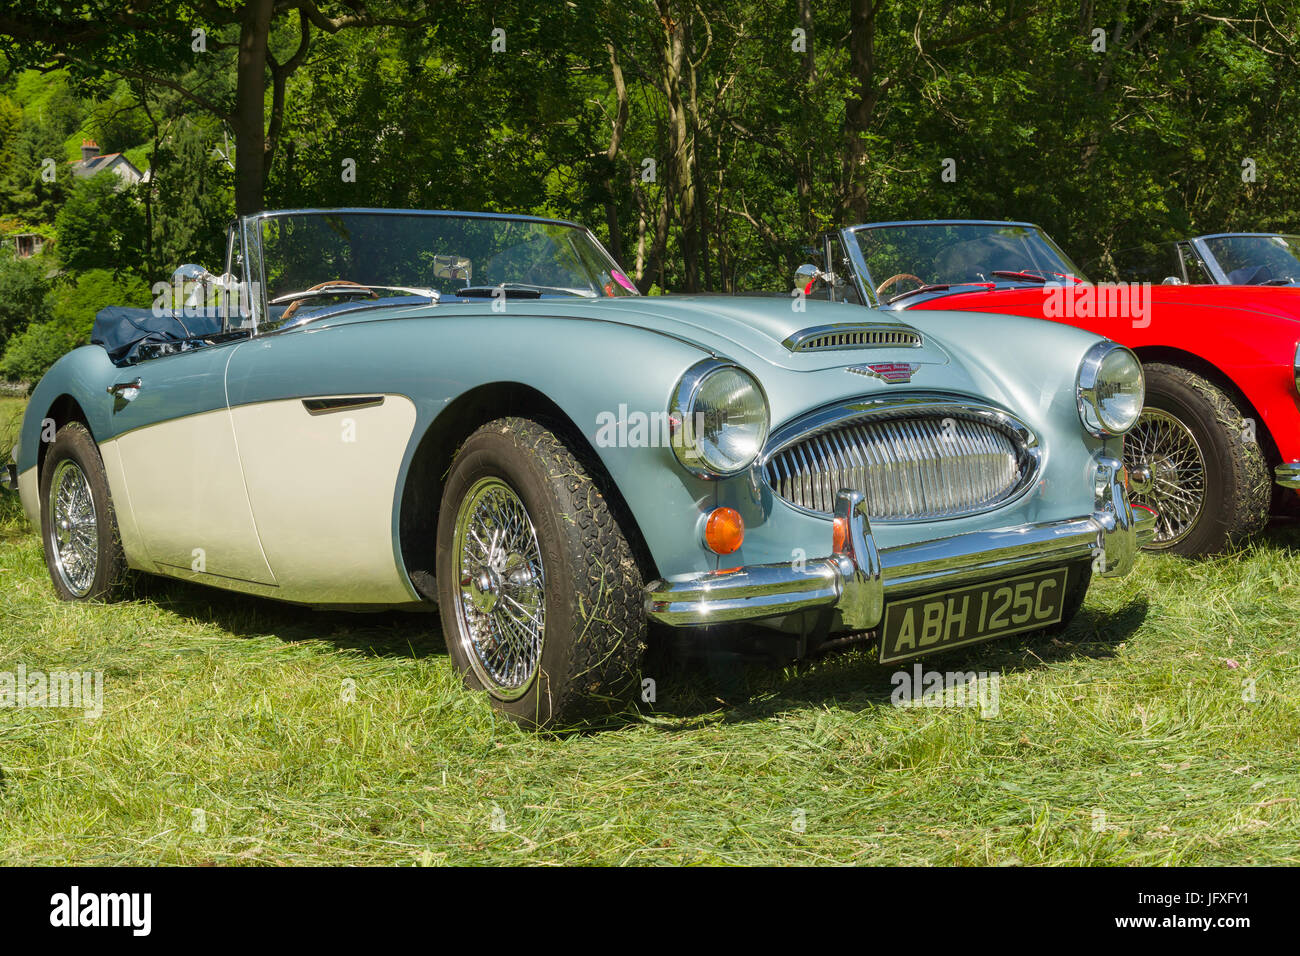 Austin Healey 3000 Mark 3 an iconic classic British sports car built from 1959 to 1967 at a vintage vehicle rally Stock Photo